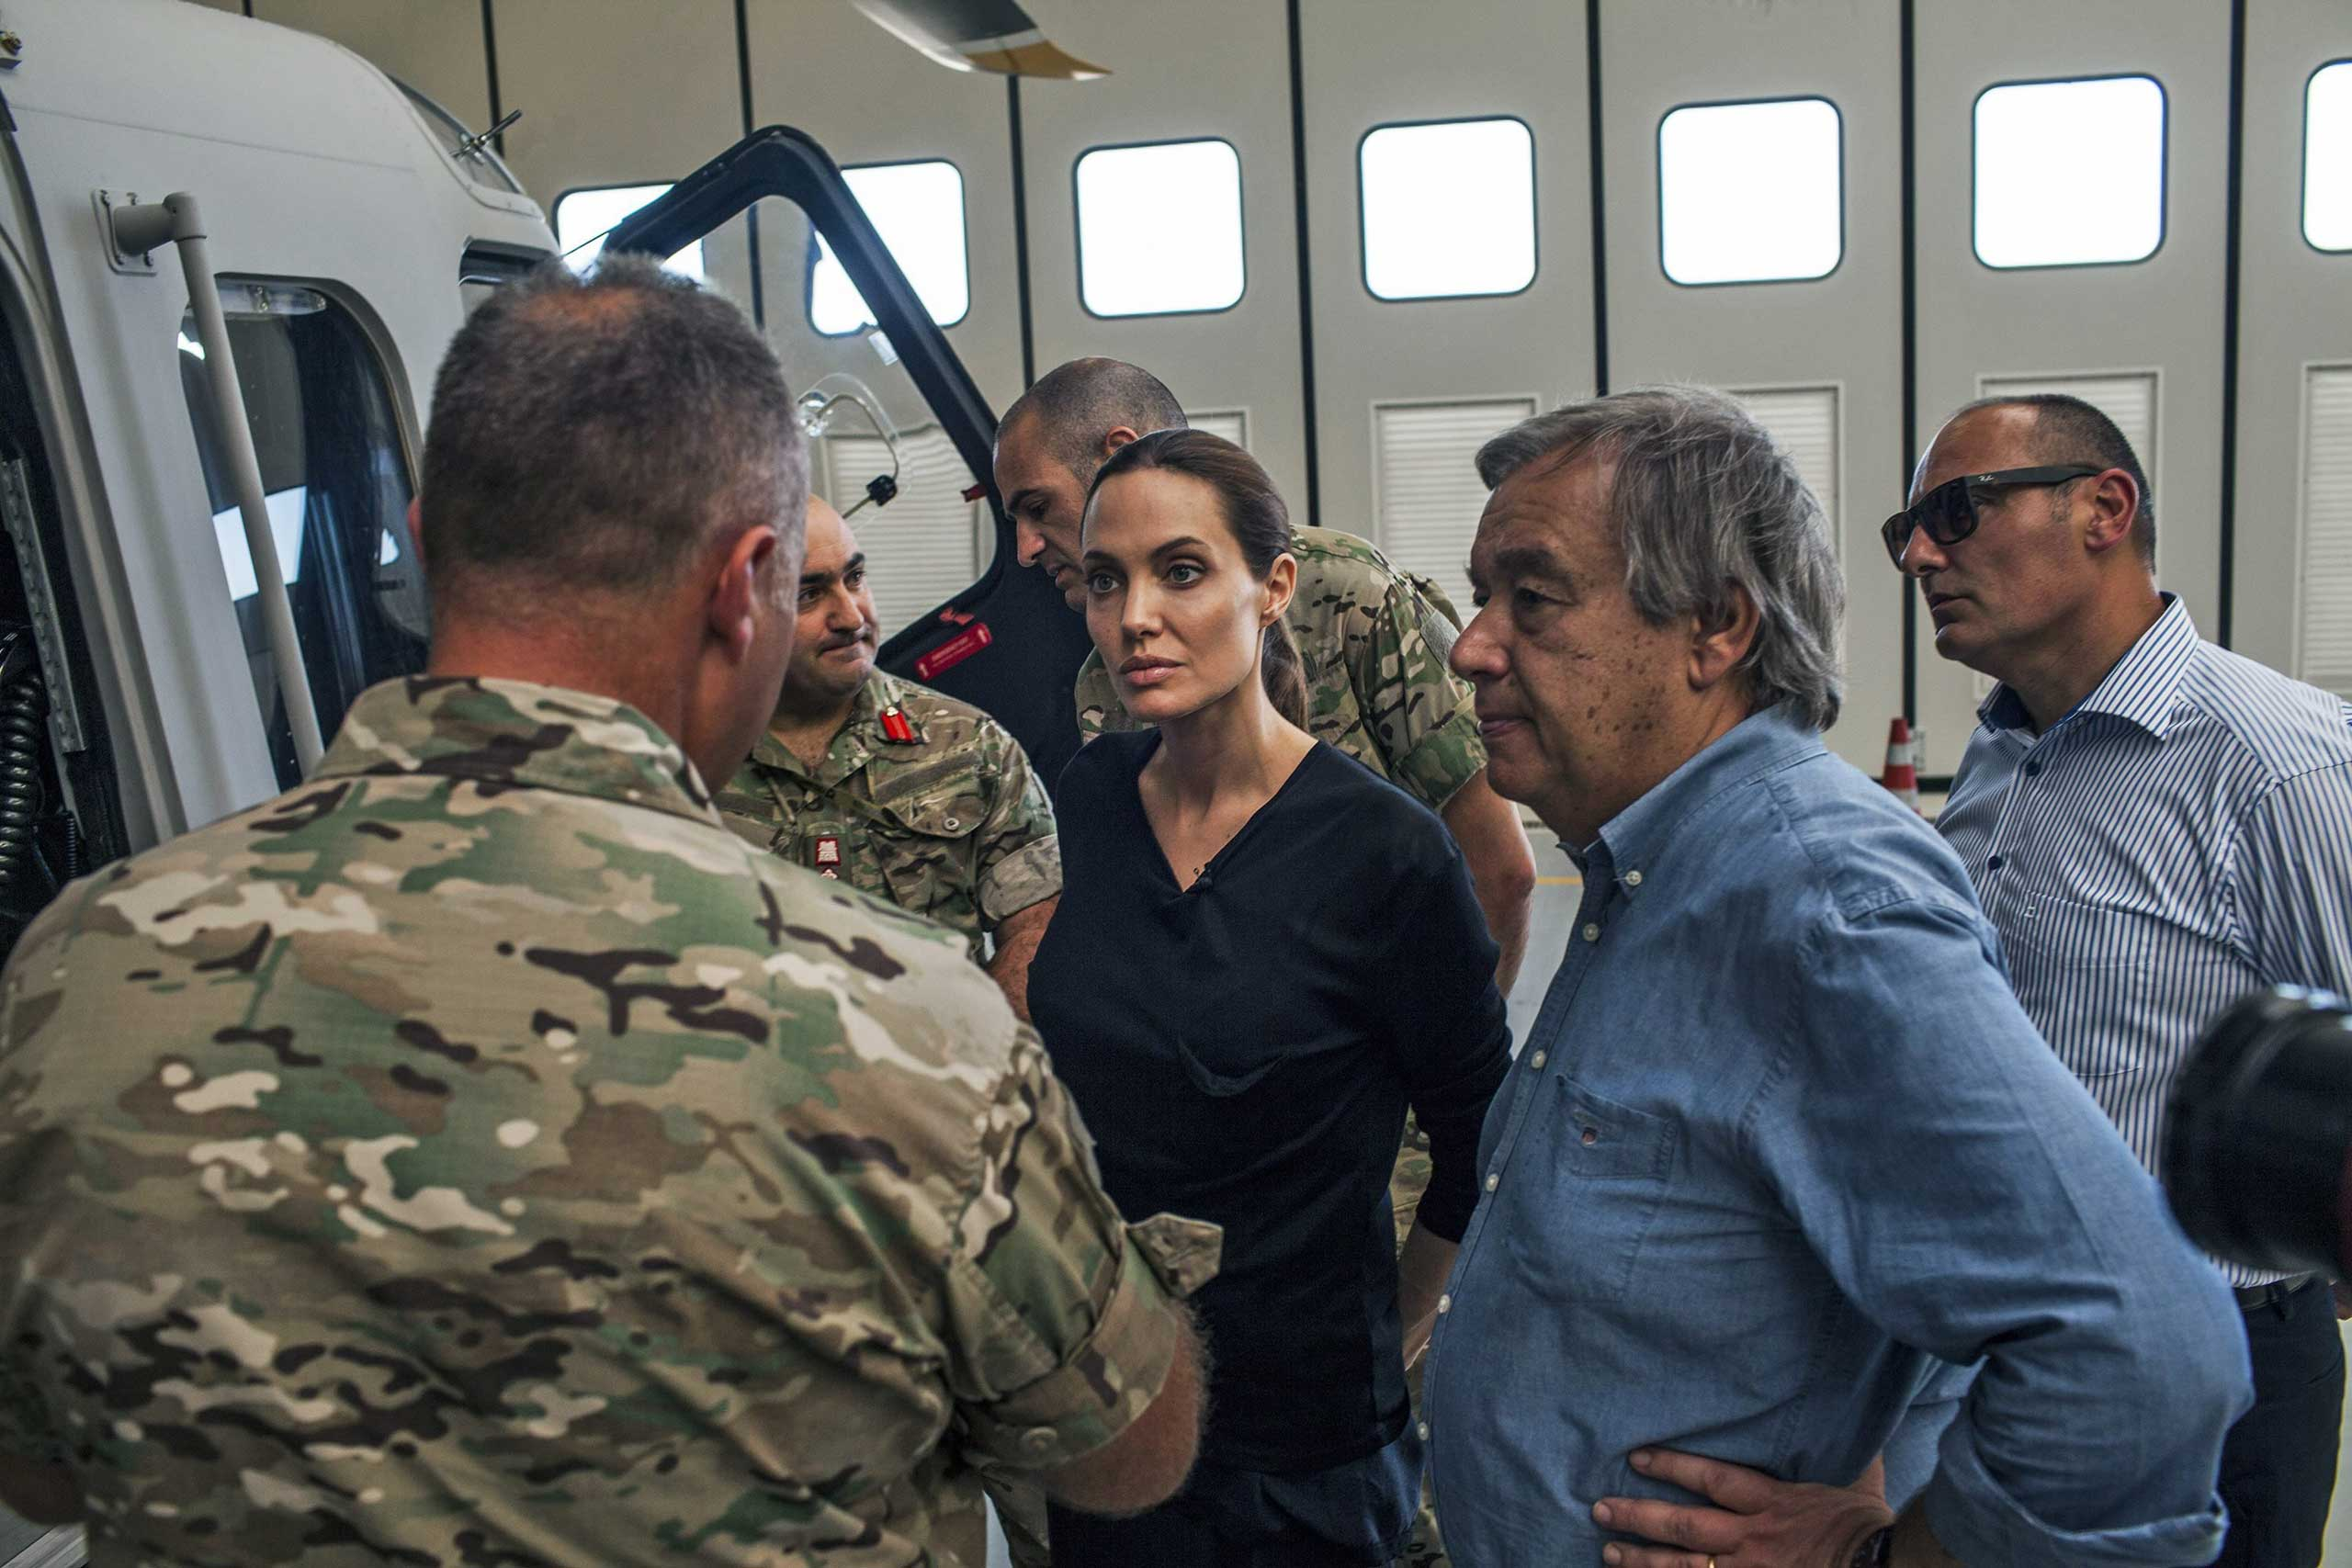 Angelina Jolie. in her role as the United Nations High Commissioner for Refugees Special Envoy, listening to Maltese military officers discussing rescue at sea operations for refugees at a military base in Valetta, Malta, Sept. 14, 2014.